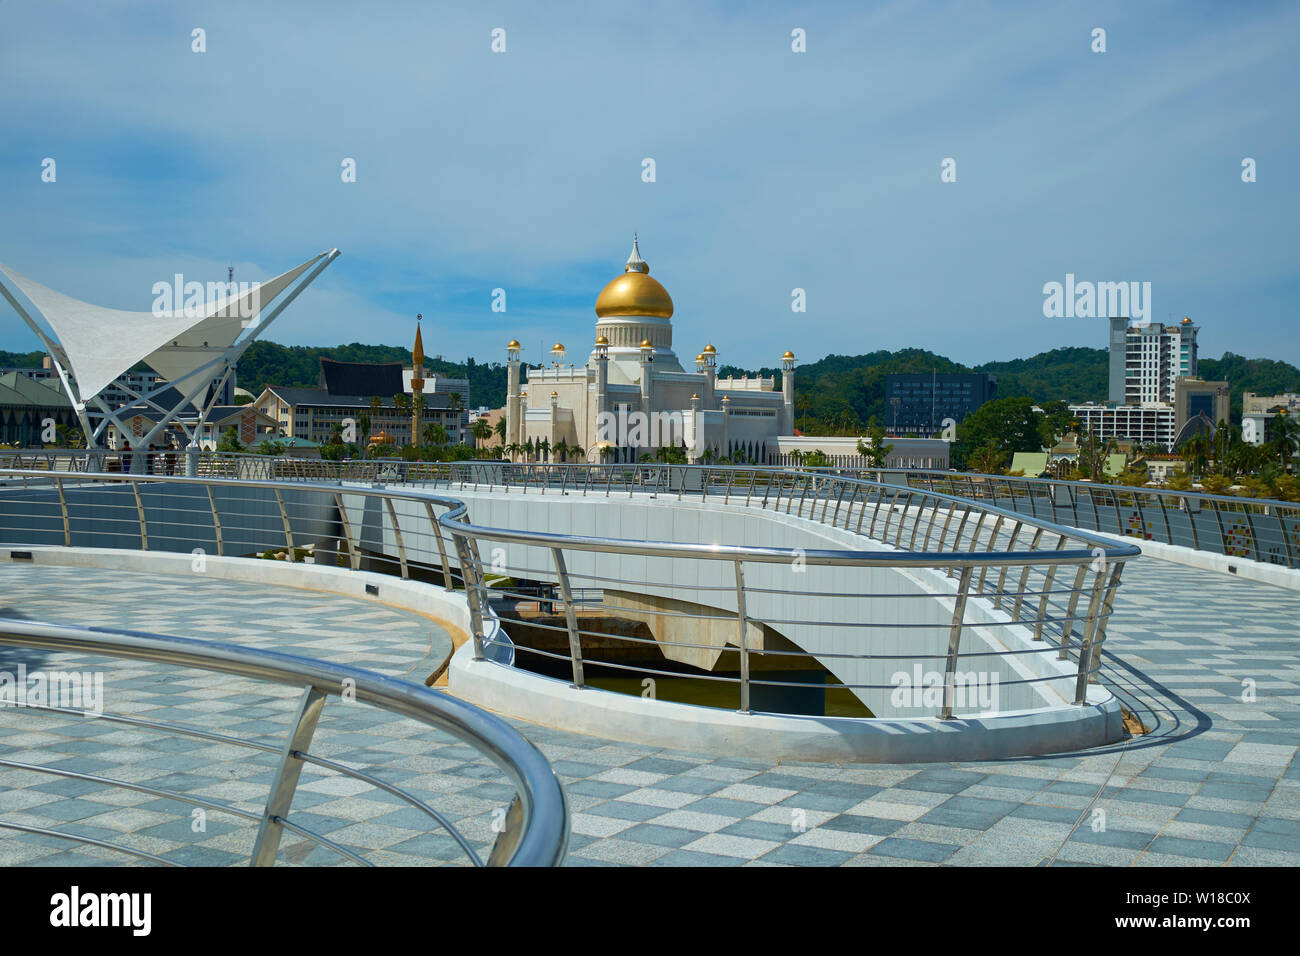 View from the new pedestrian bridge of downtown Bandar Seri Begawan,Brunei. The Omar Ali Saifuddien mosque is in the distance. - Stock Image